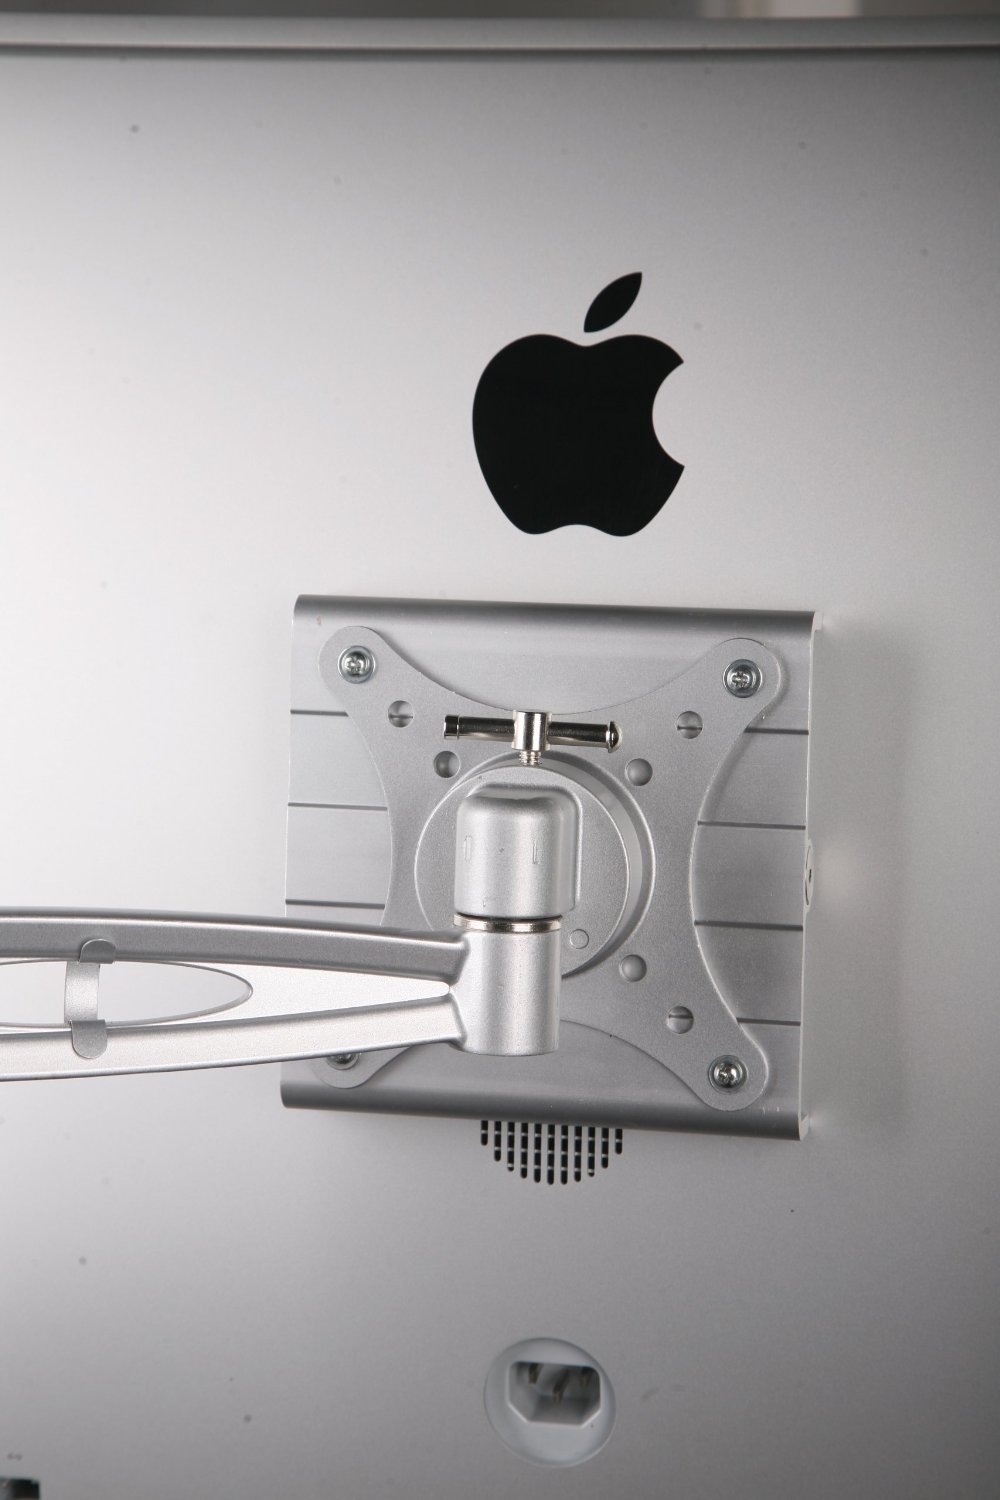 Vesa Adapter For Apple Thunderbolt Display And More